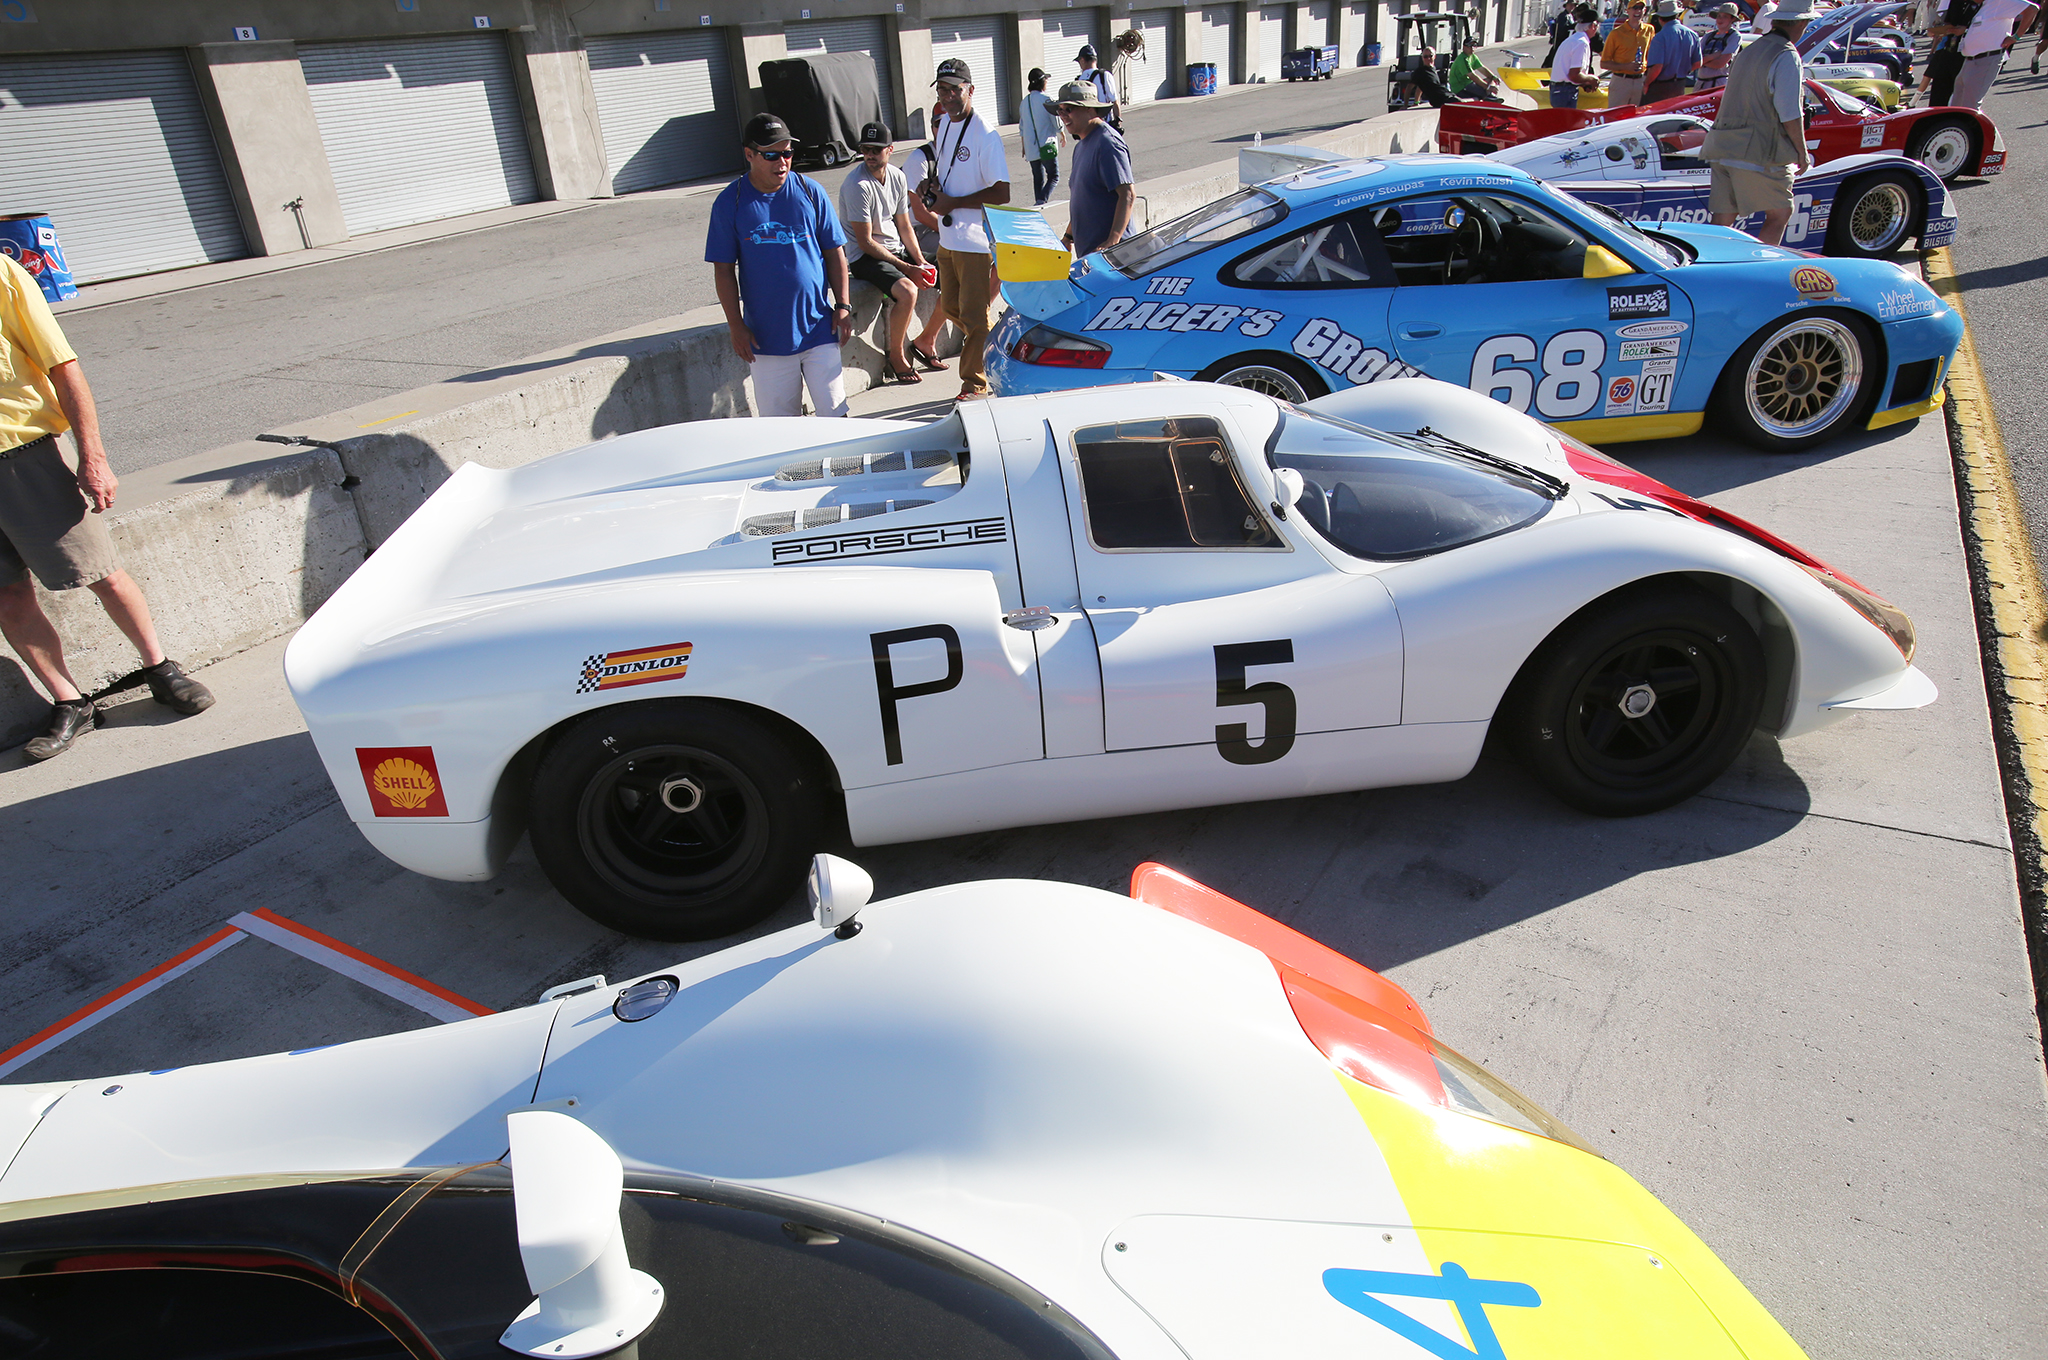 29. Michael Malone's 1968 Porsche 908 at the concours.